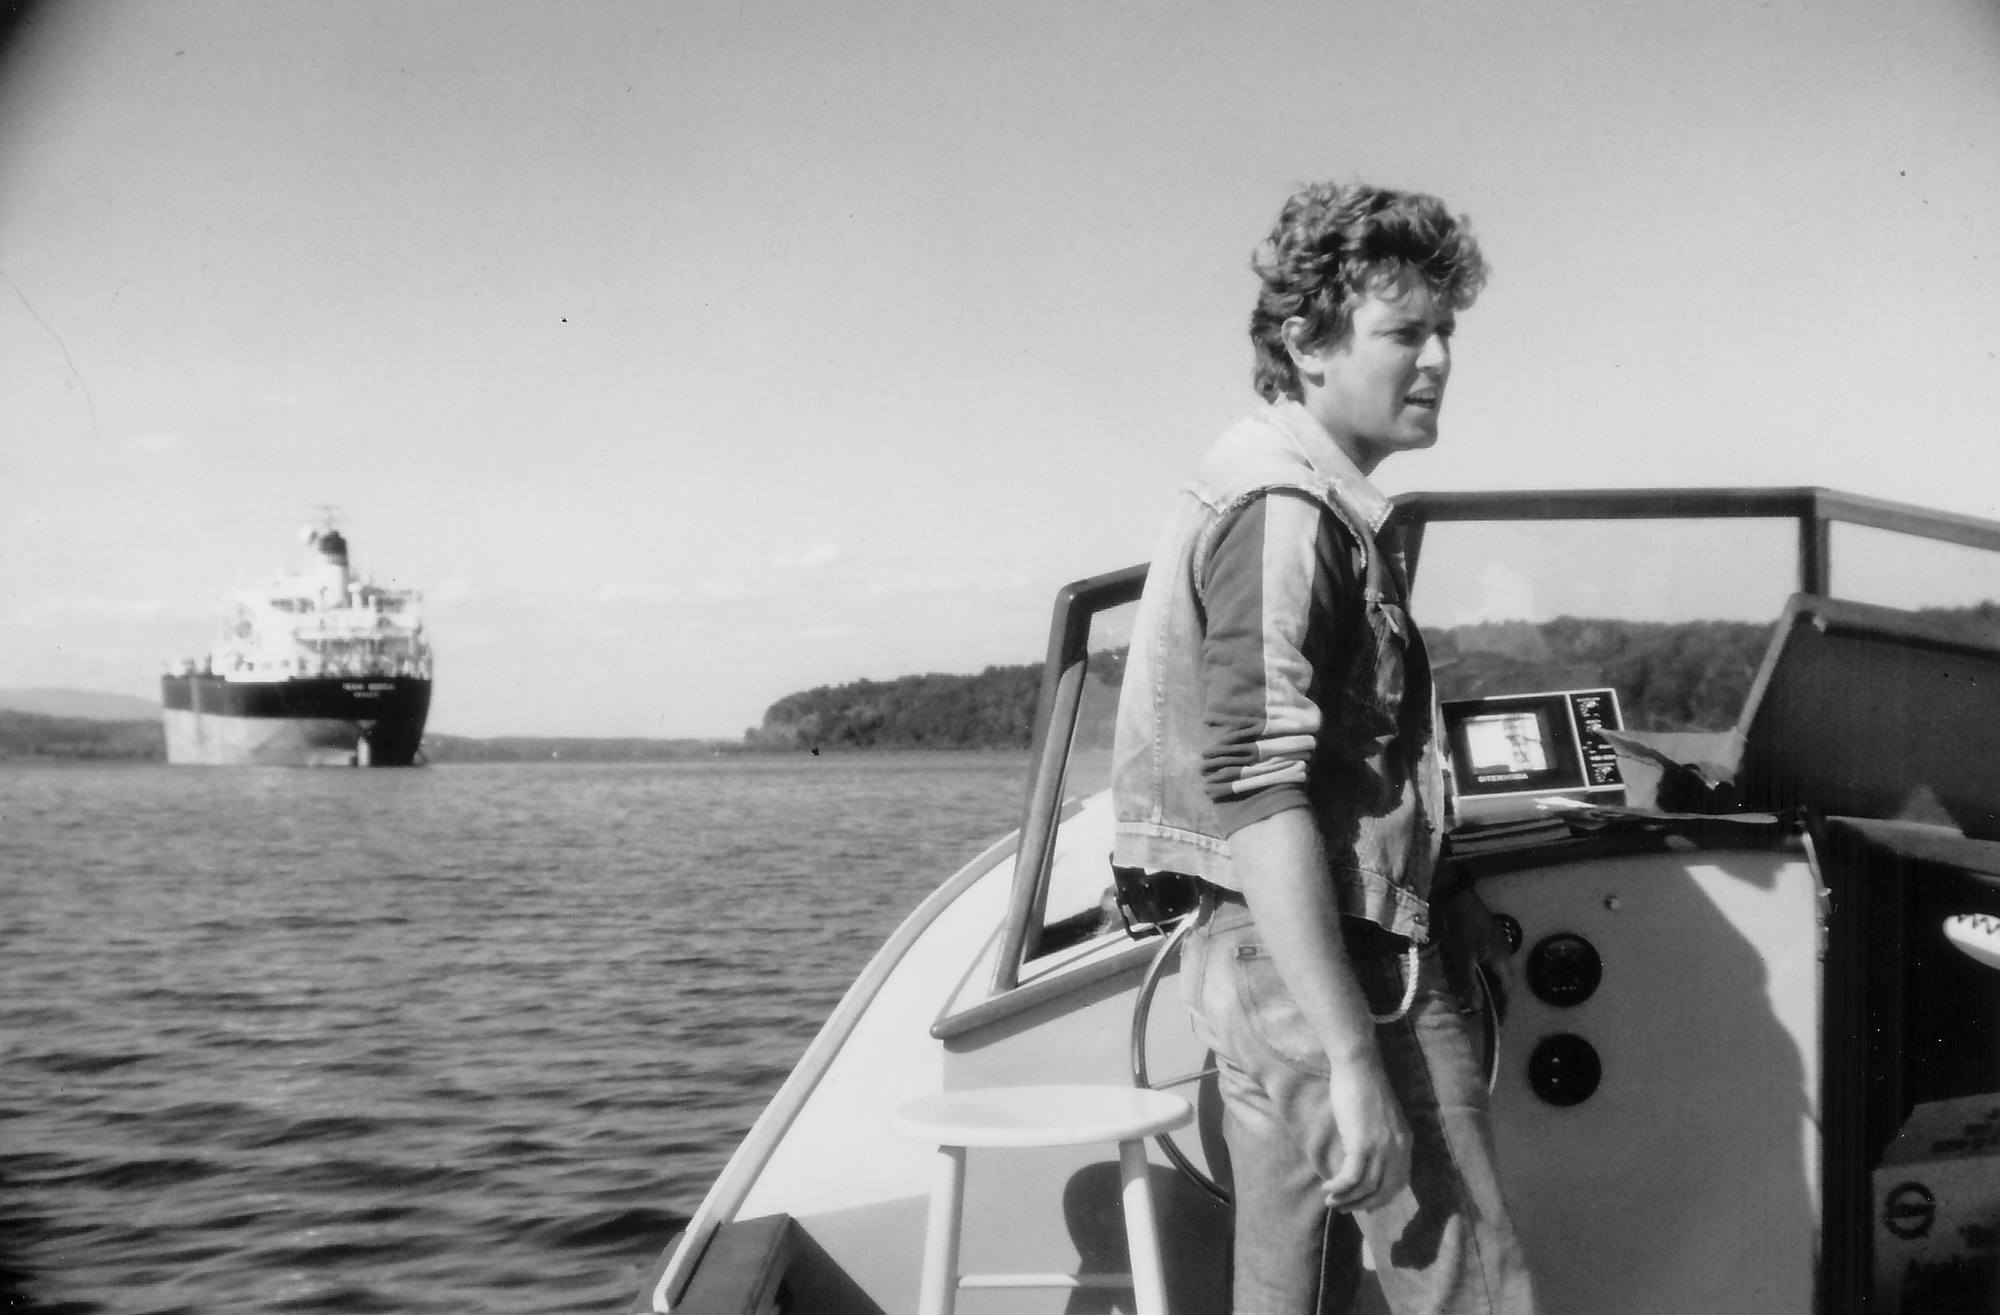 John Cronin, the first Riverkeeper. He used environmental law to stop polluters on the Hudson.